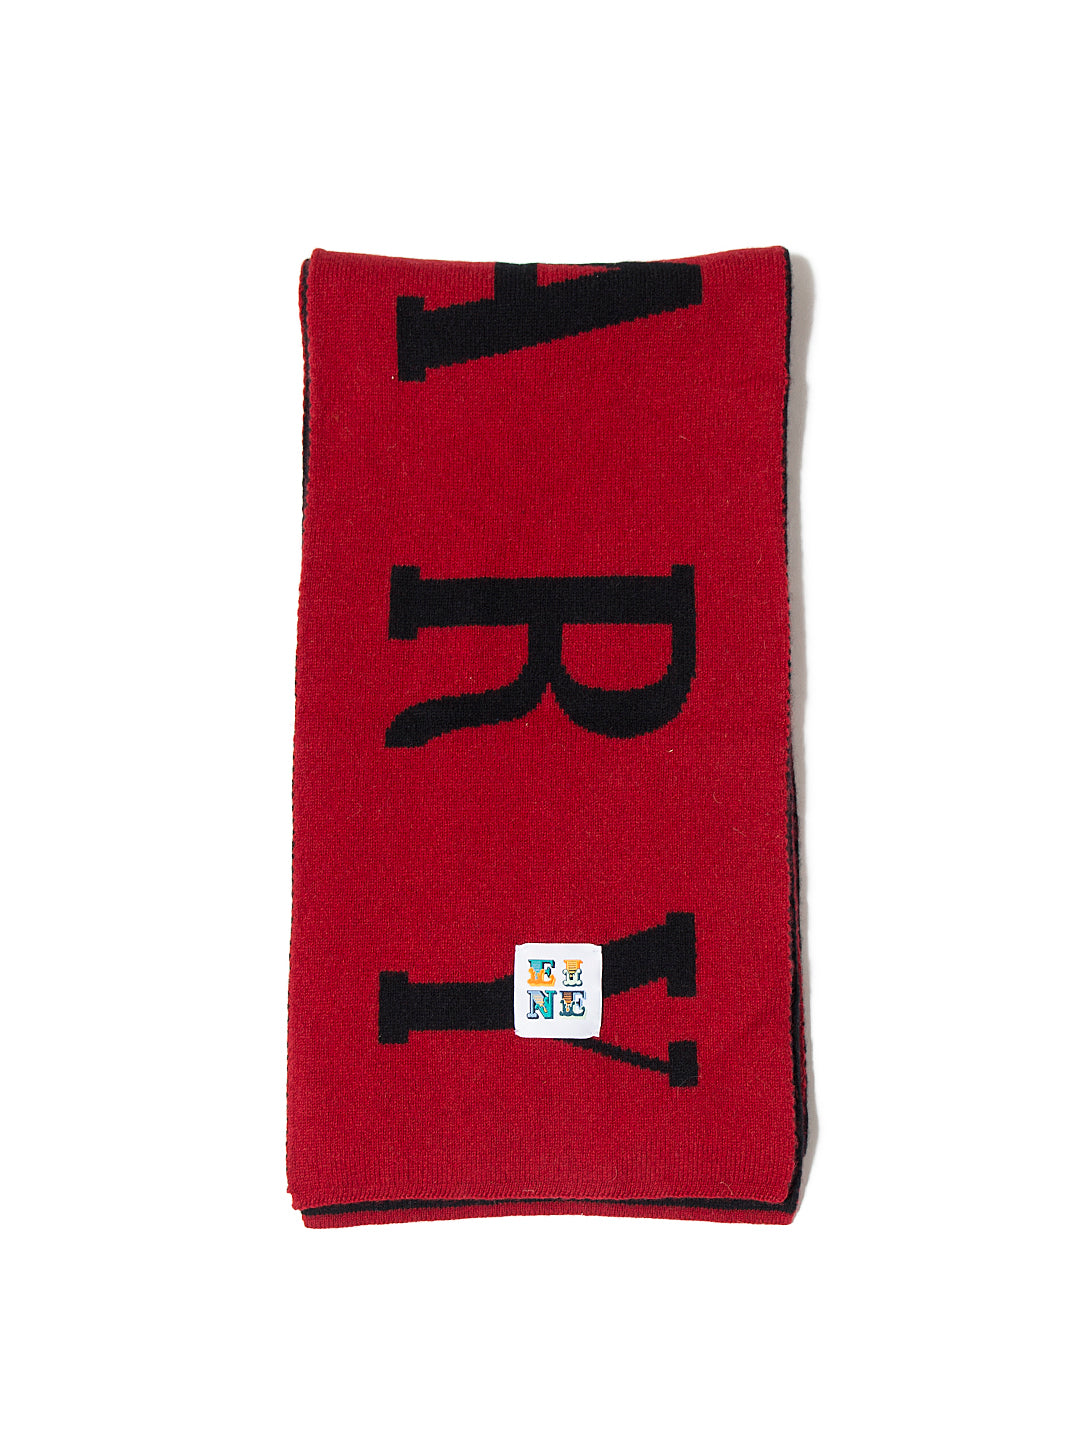 Scary Scarf - Black Red